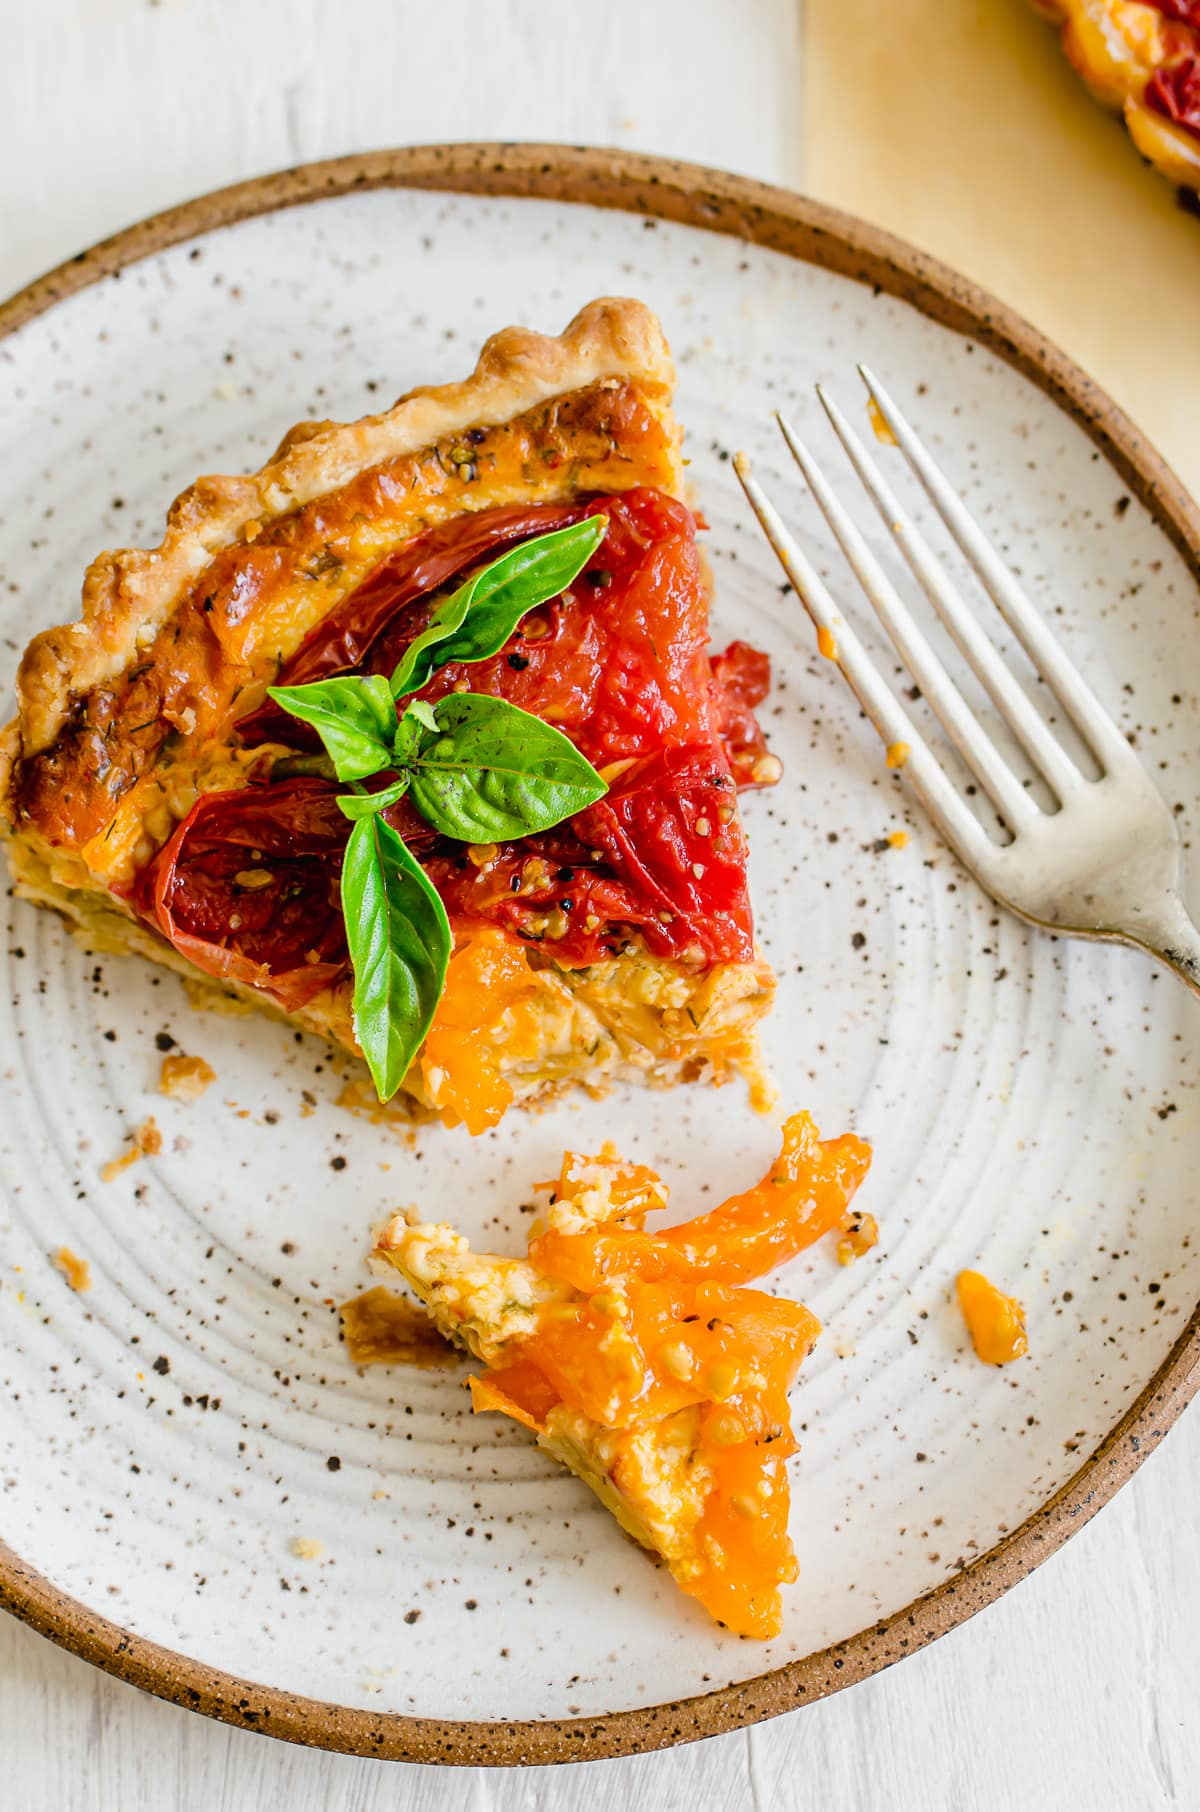 A slice of tomato tart on a plate with a fork and bite cut off.